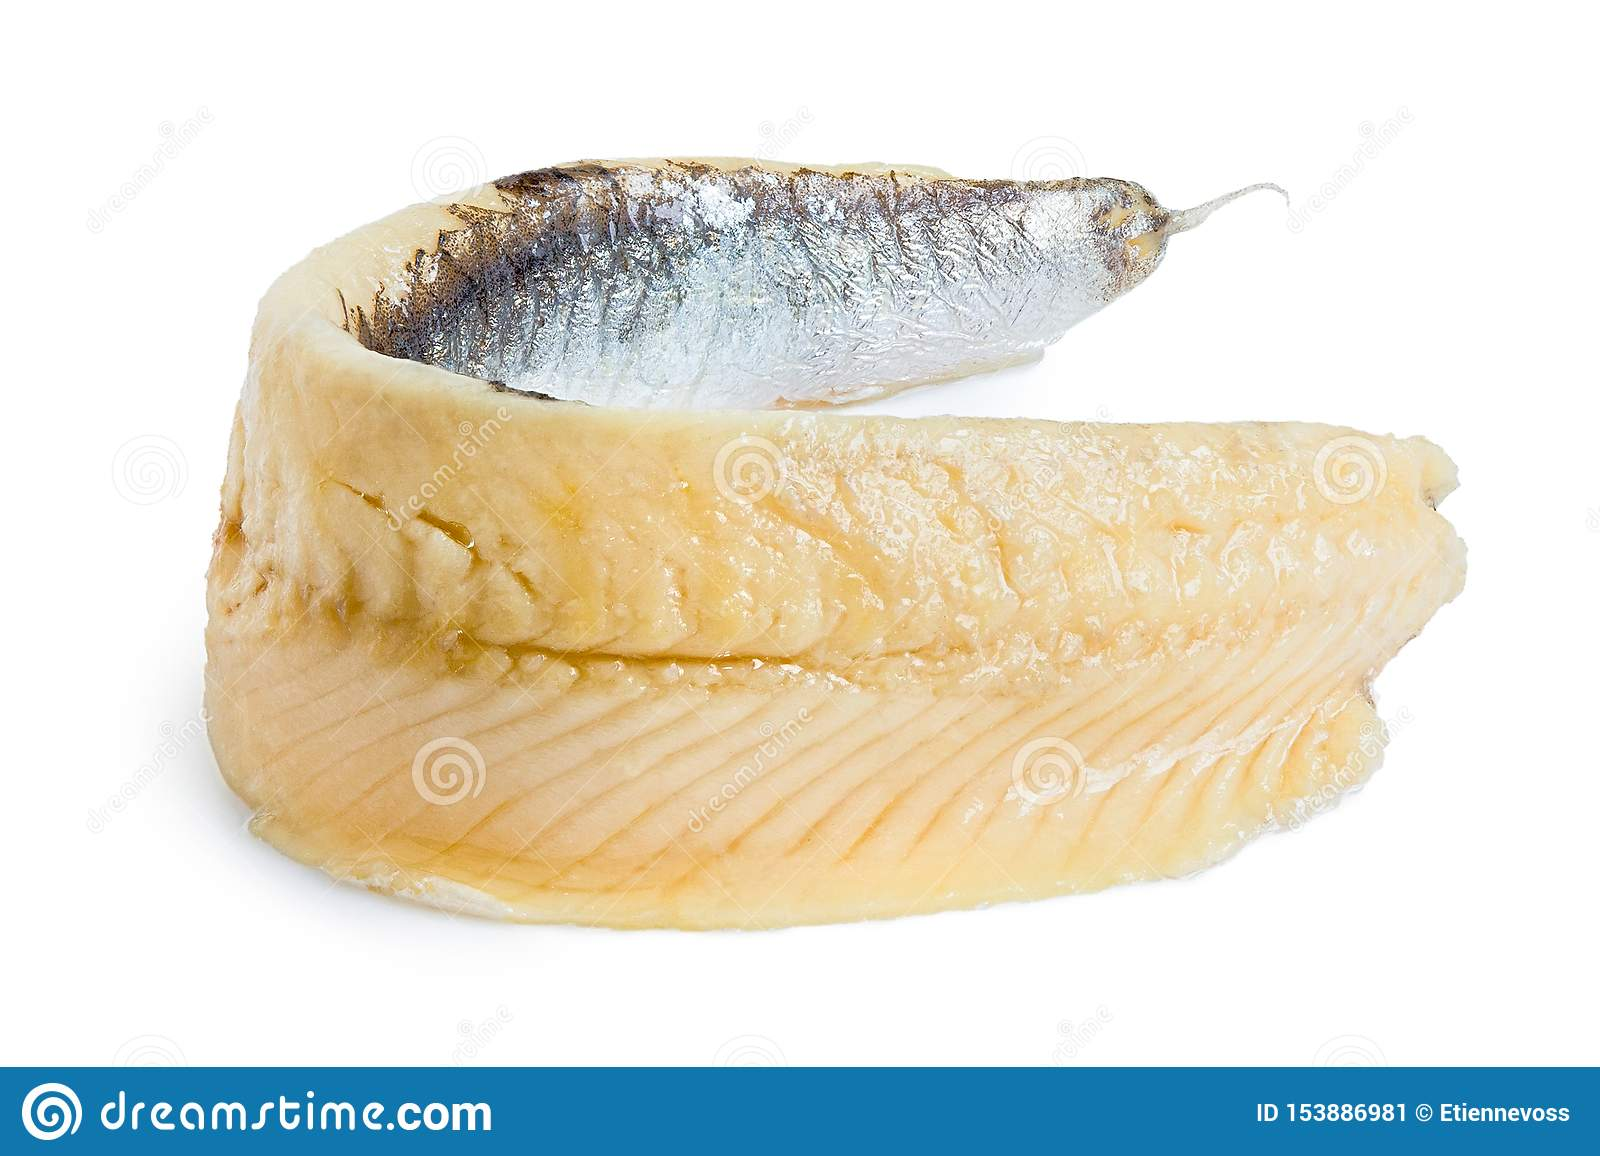 A single piece of anchovy fillet isolated on white